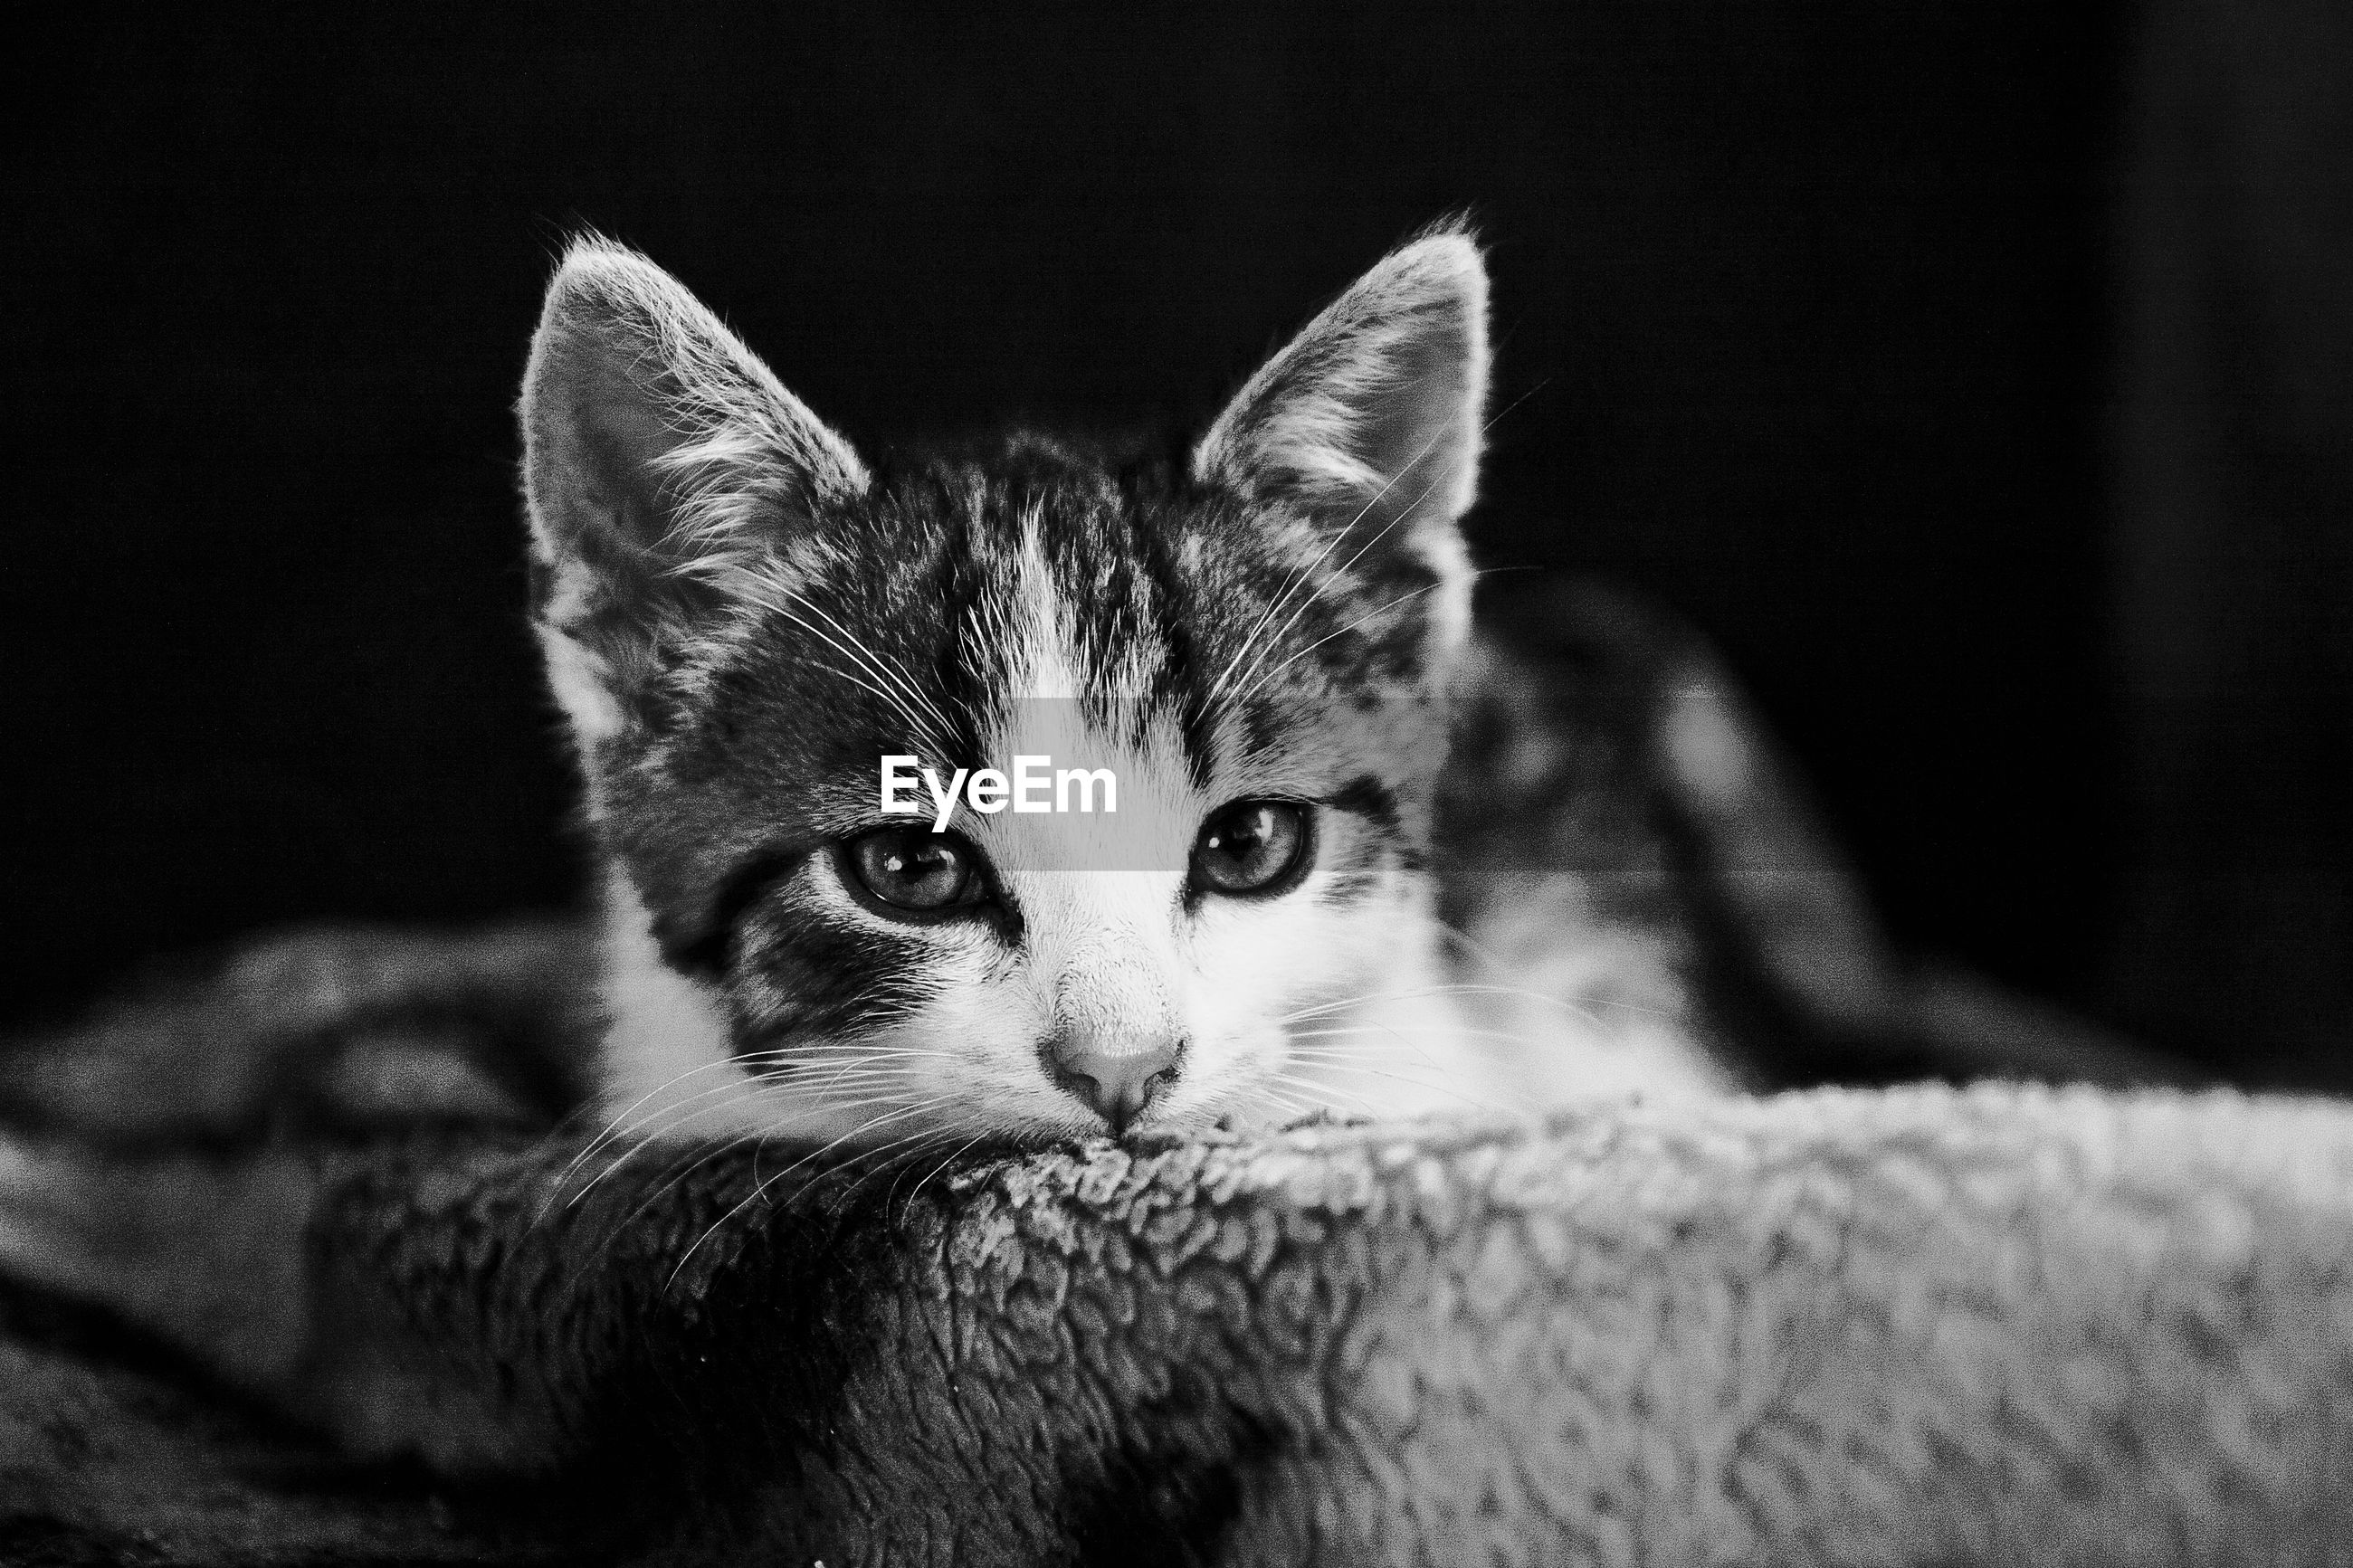 Close-up portrait of kitten on bed against black background